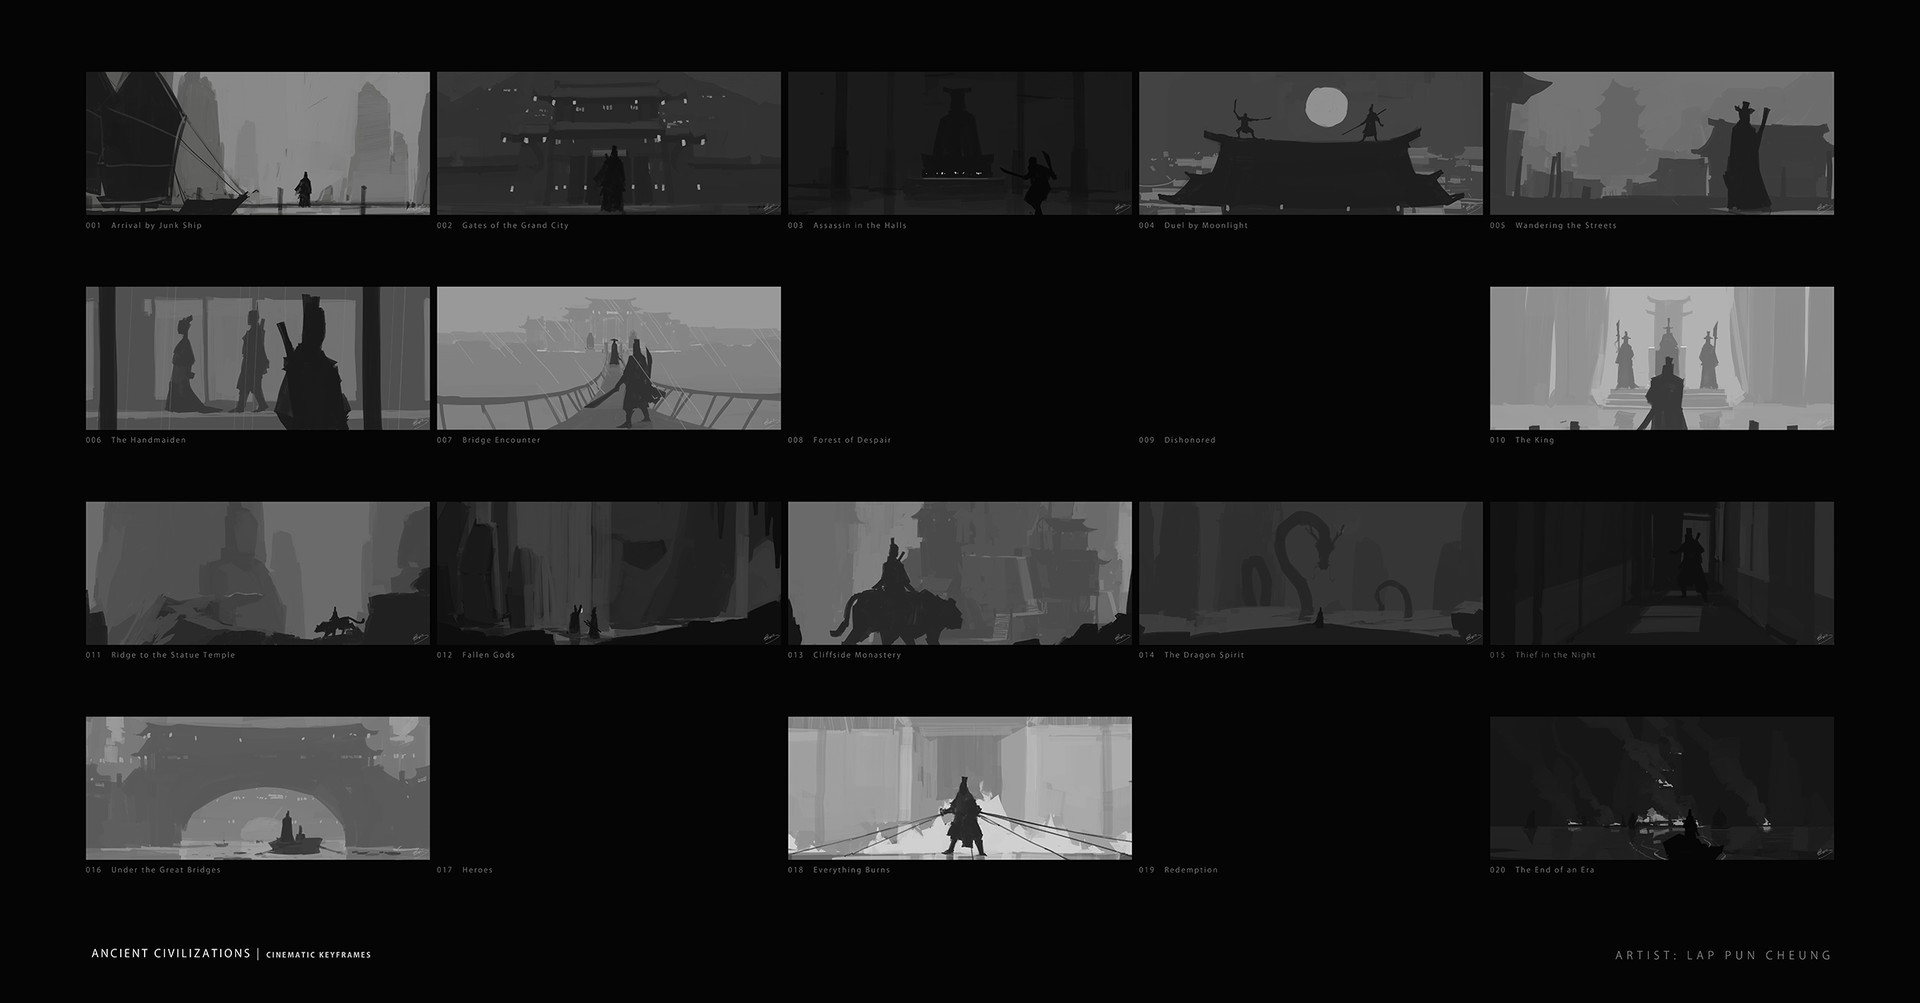 Lap pun cheung cinematic collection keyframes 001 online